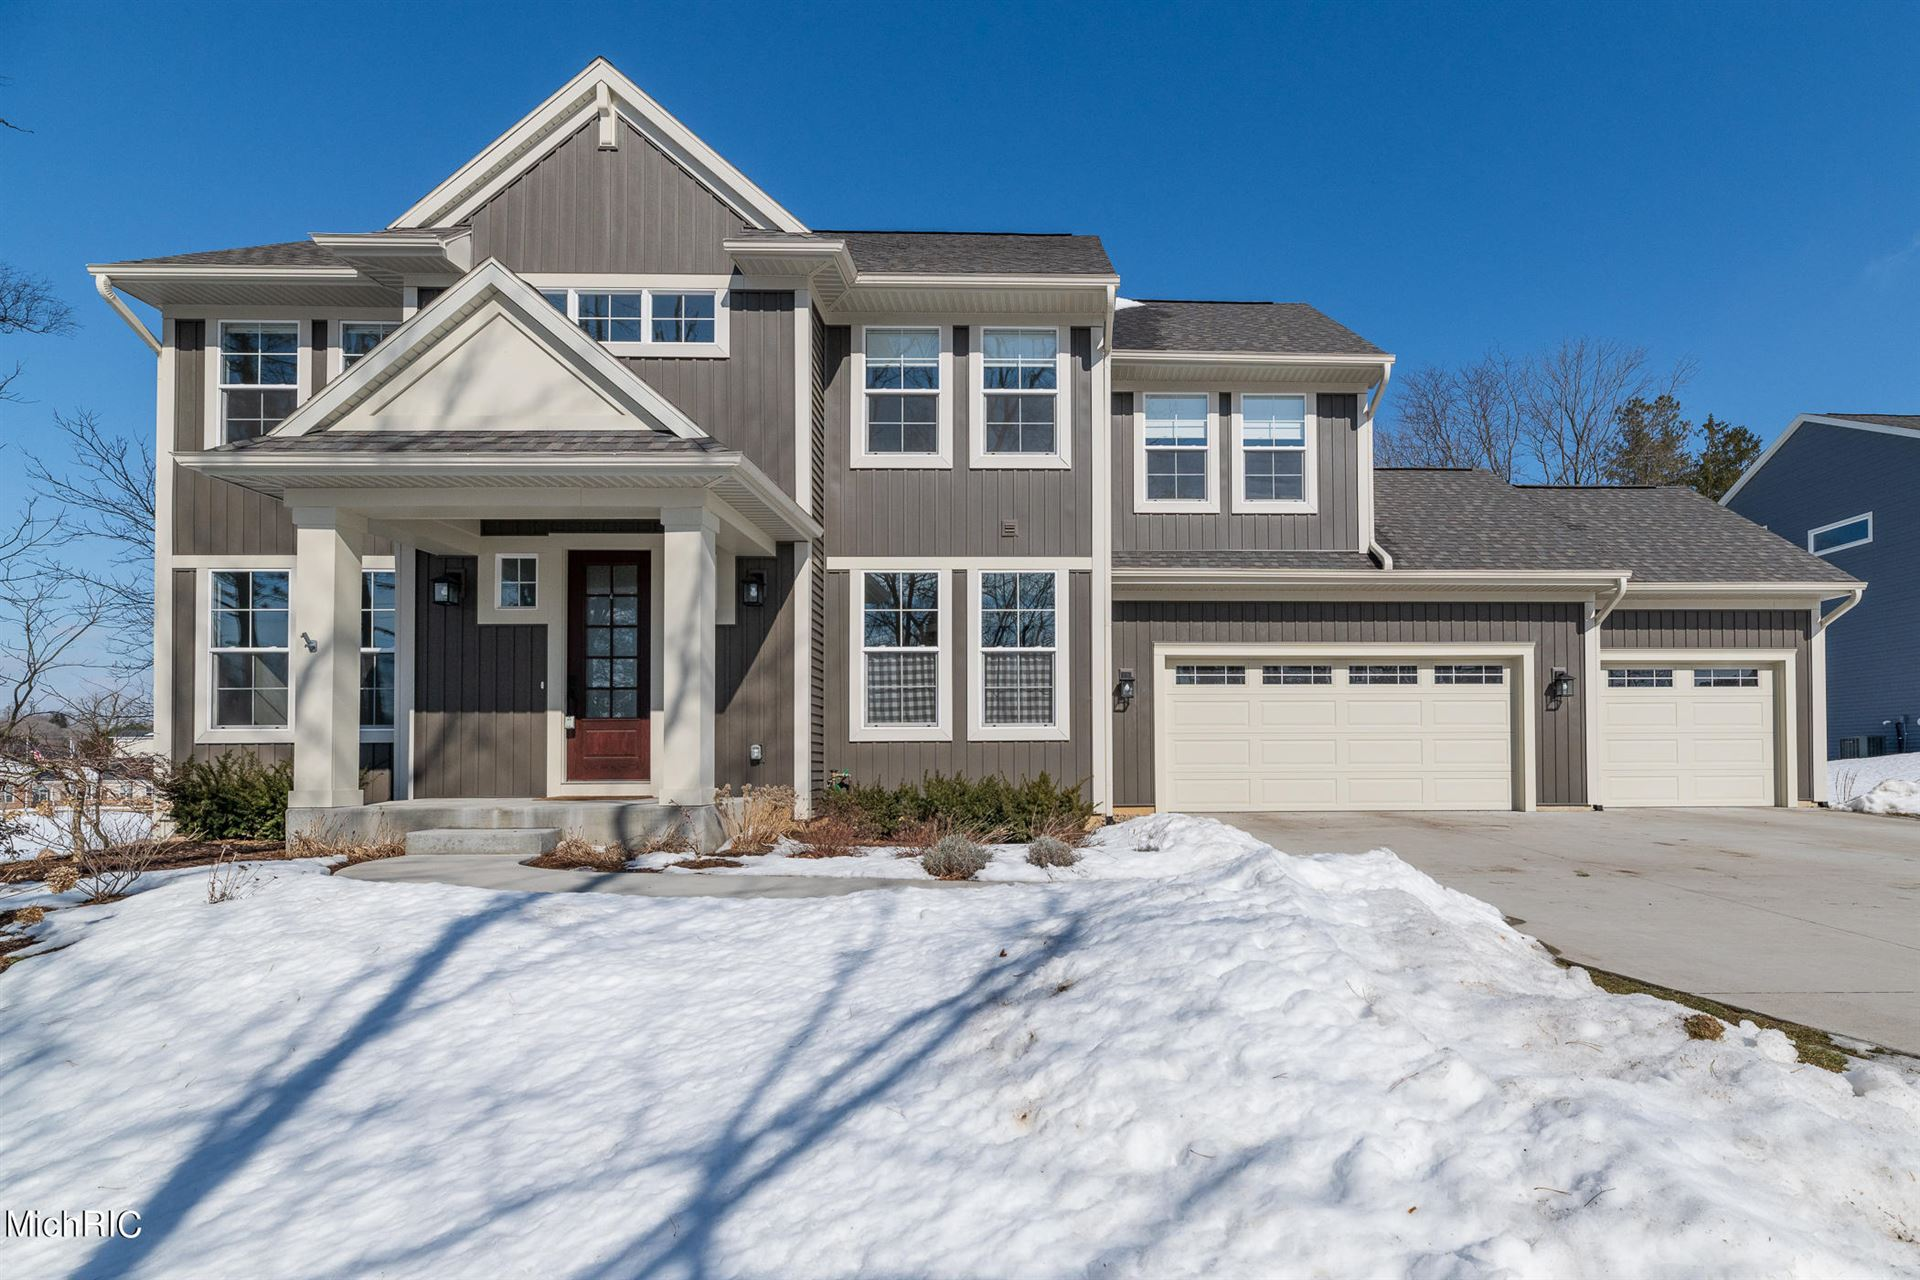 6220 Mcgillicuddy Lane, Portage, MI 49024 - MLS#: 21005723